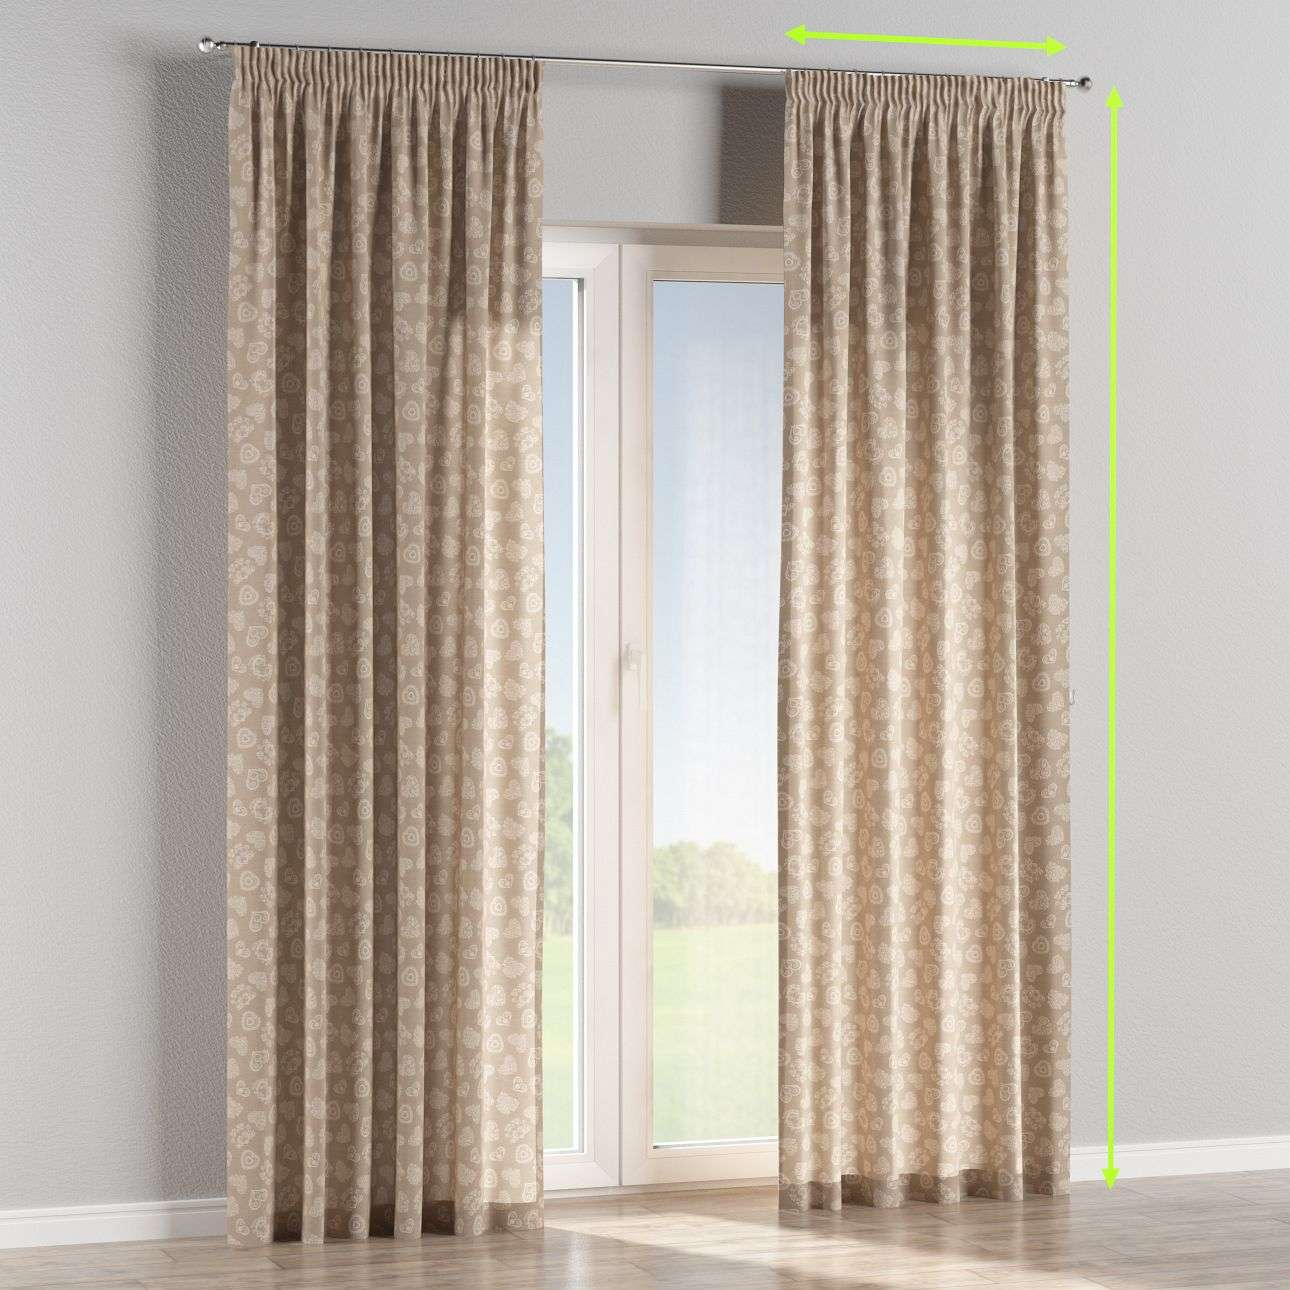 Pencil pleat lined curtains in collection Flowers, fabric: 140-56